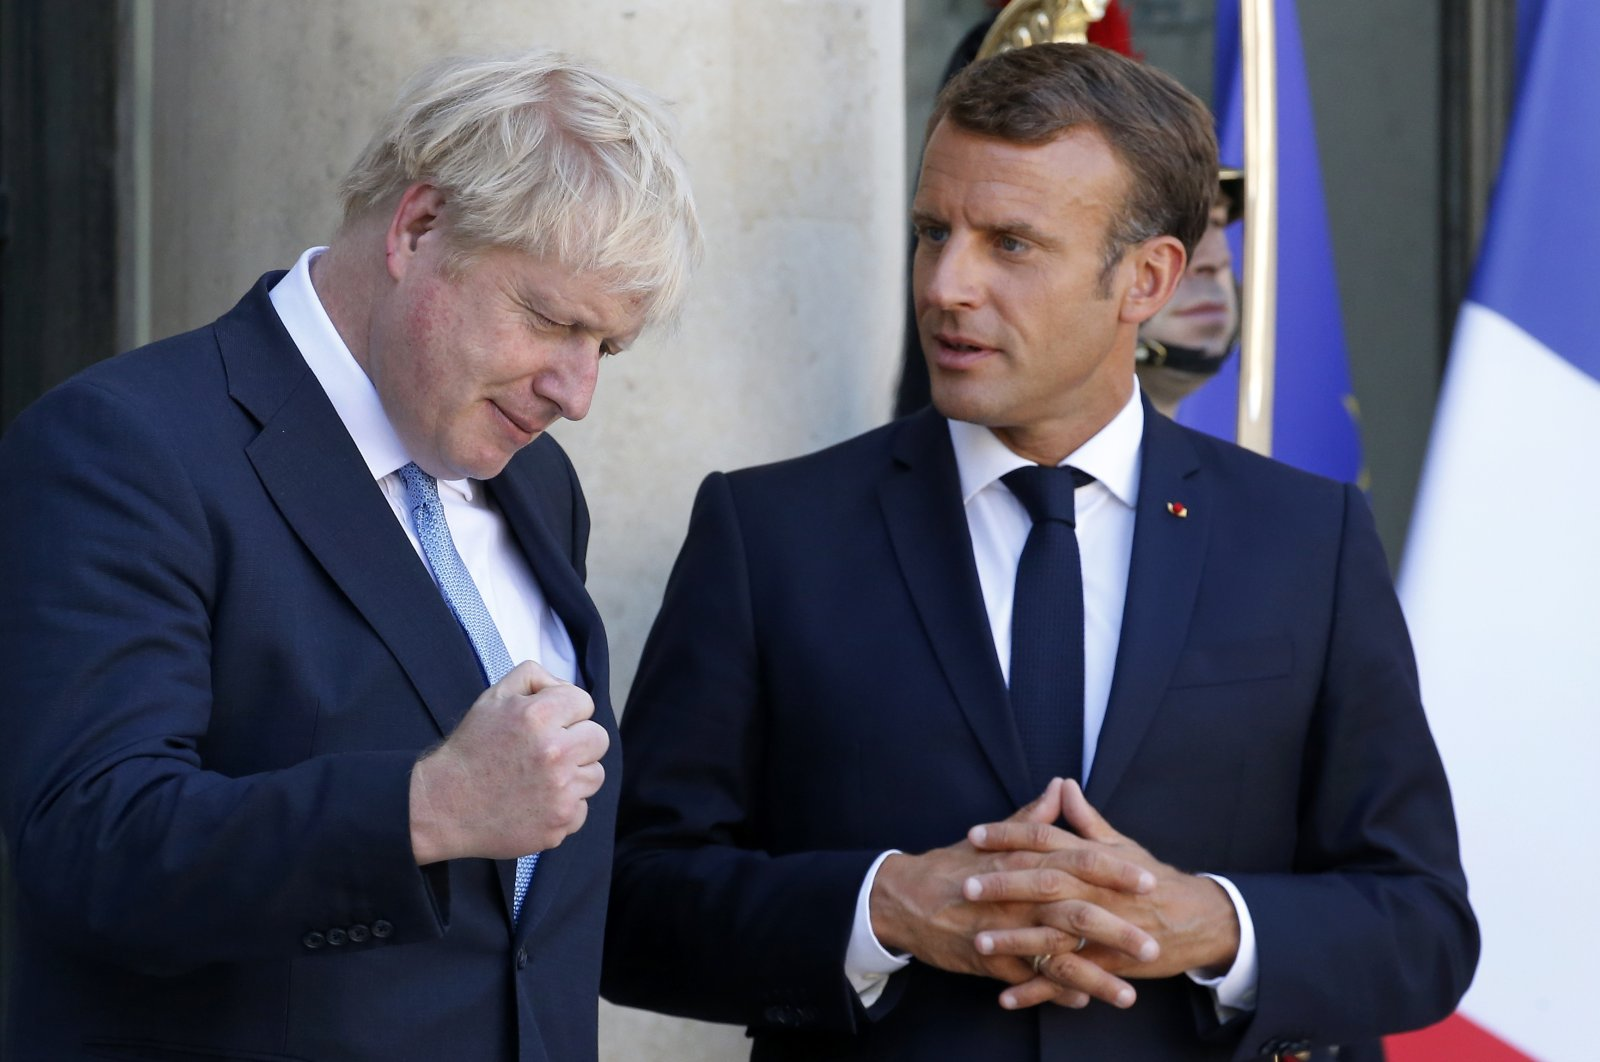 French President Emmanuel Macron accompanies British Prime Minister Boris Johnson after their meeting on Brexit at the Elysee Presidential Palace on August 22, 2019 in Paris, France. (Getty Images)